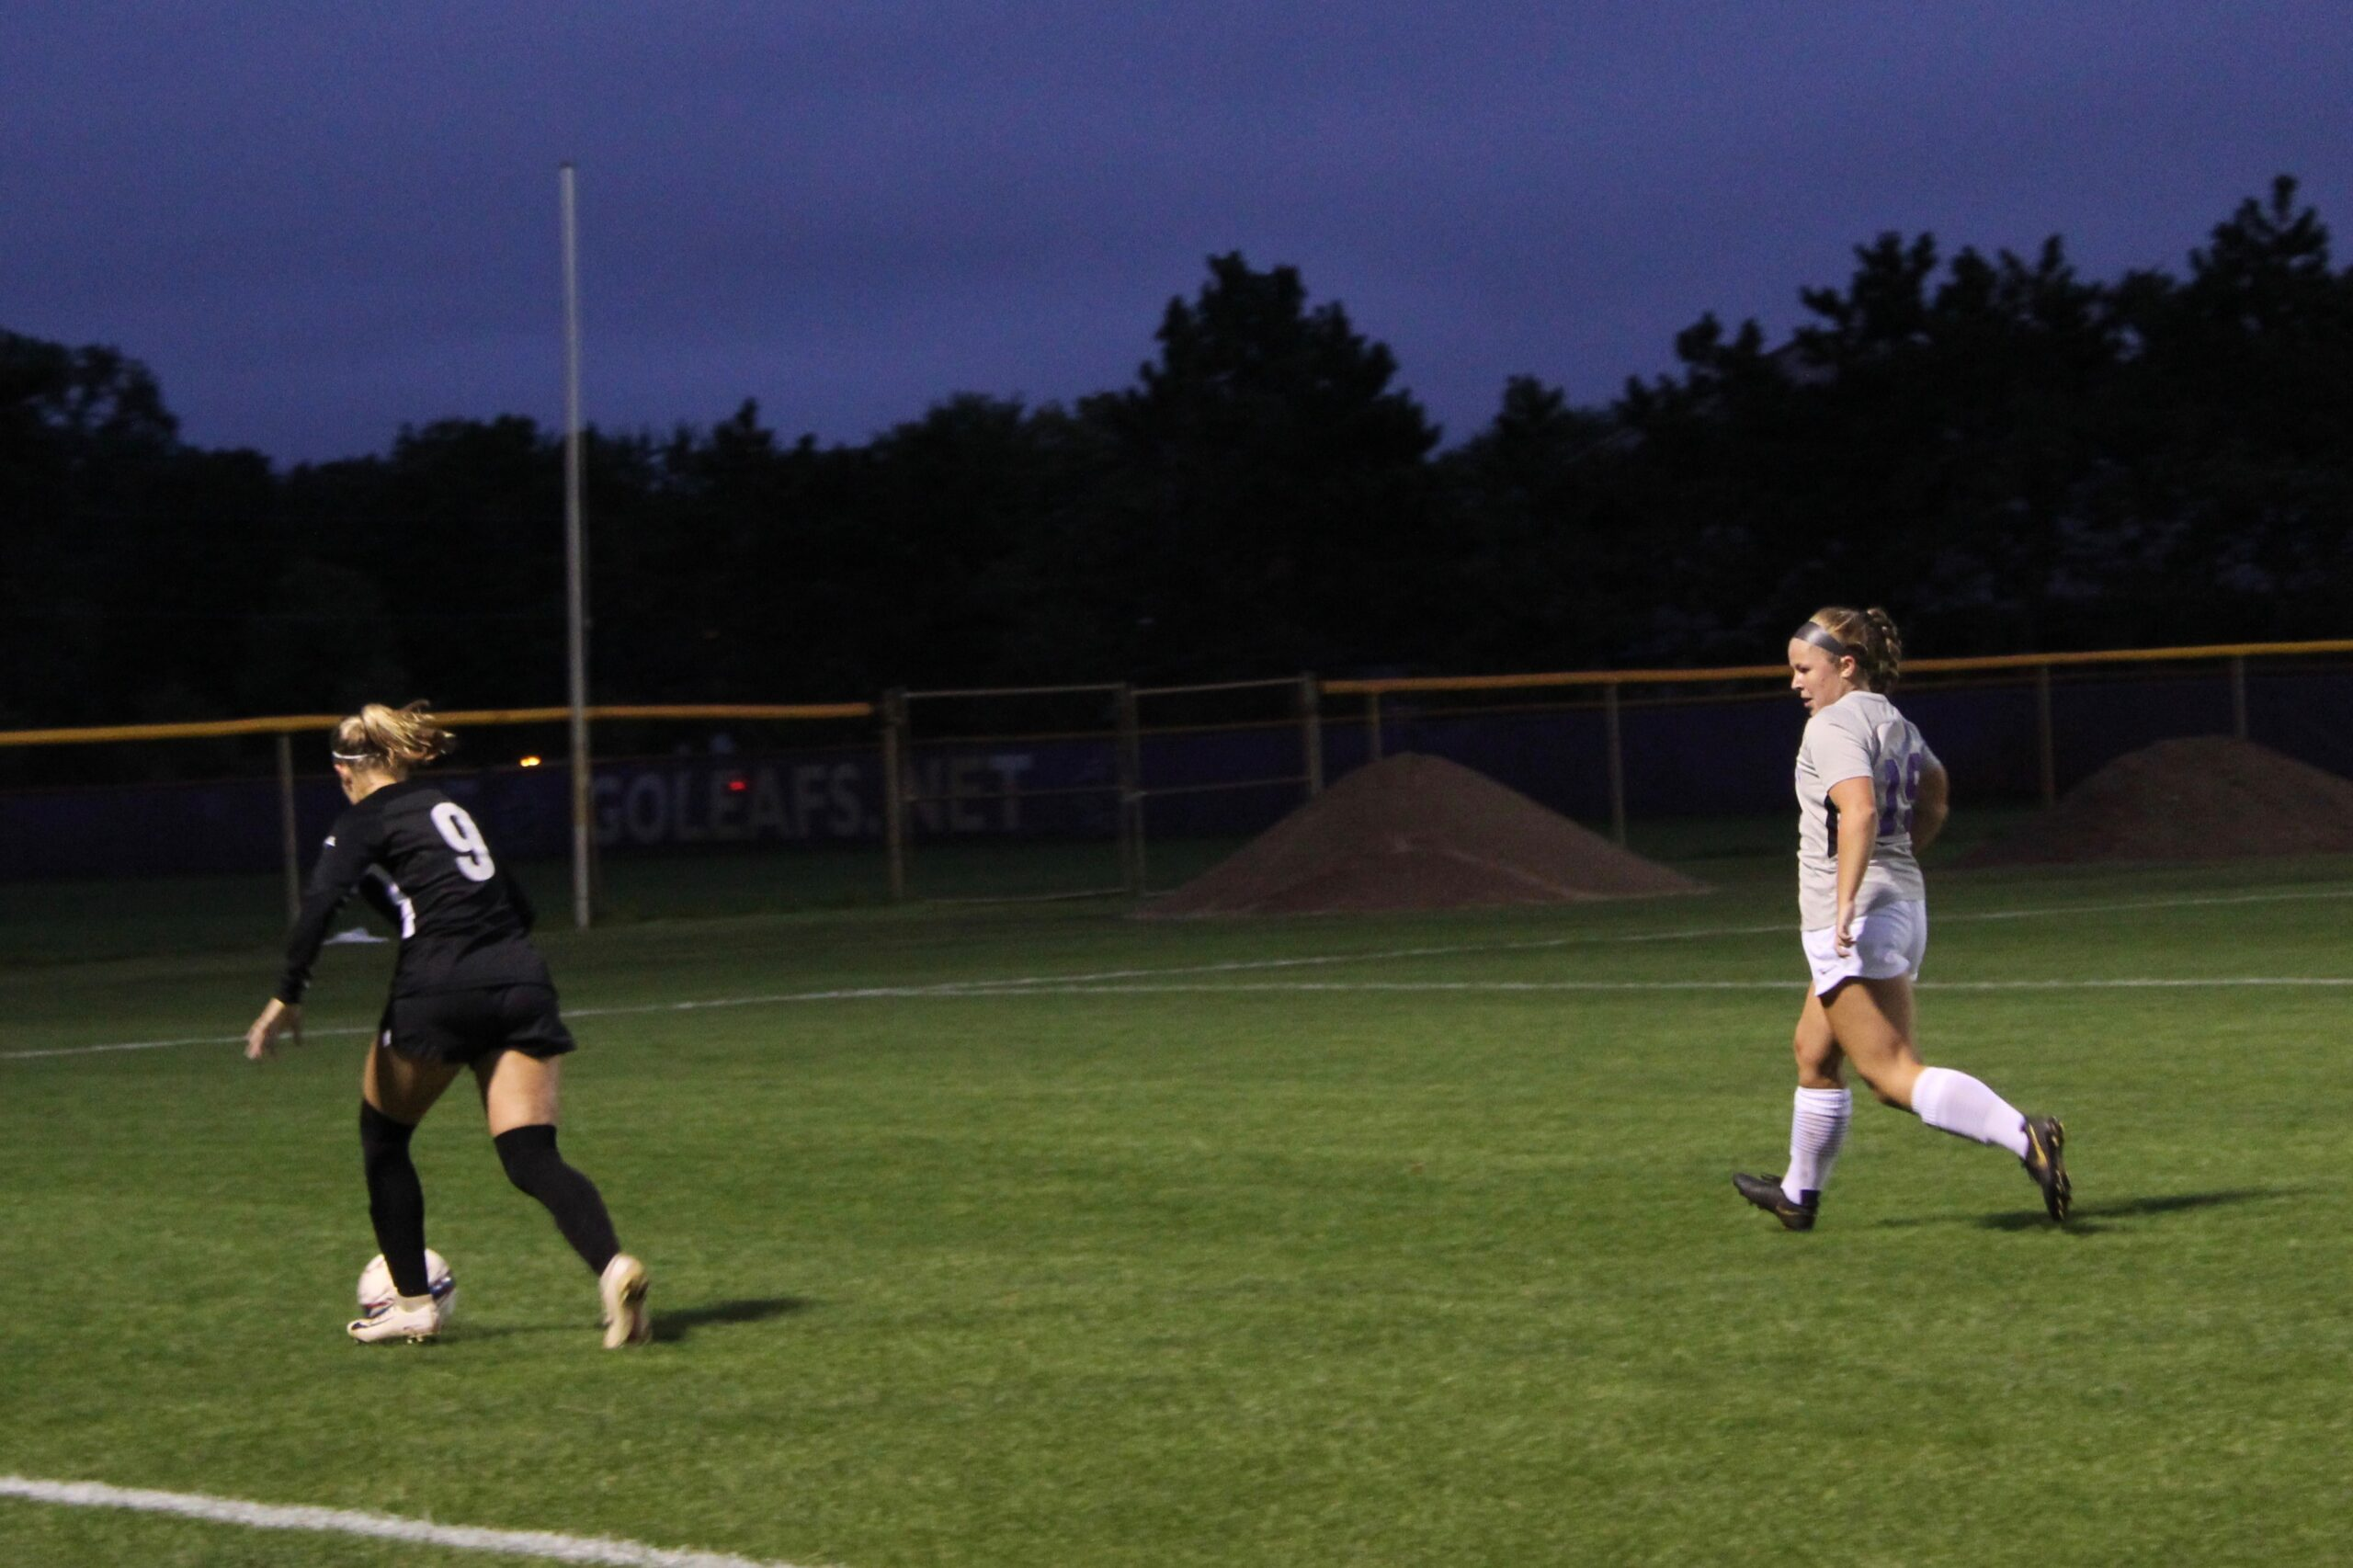 A Goshen women's soccer player and an opposing player run down the field during a game